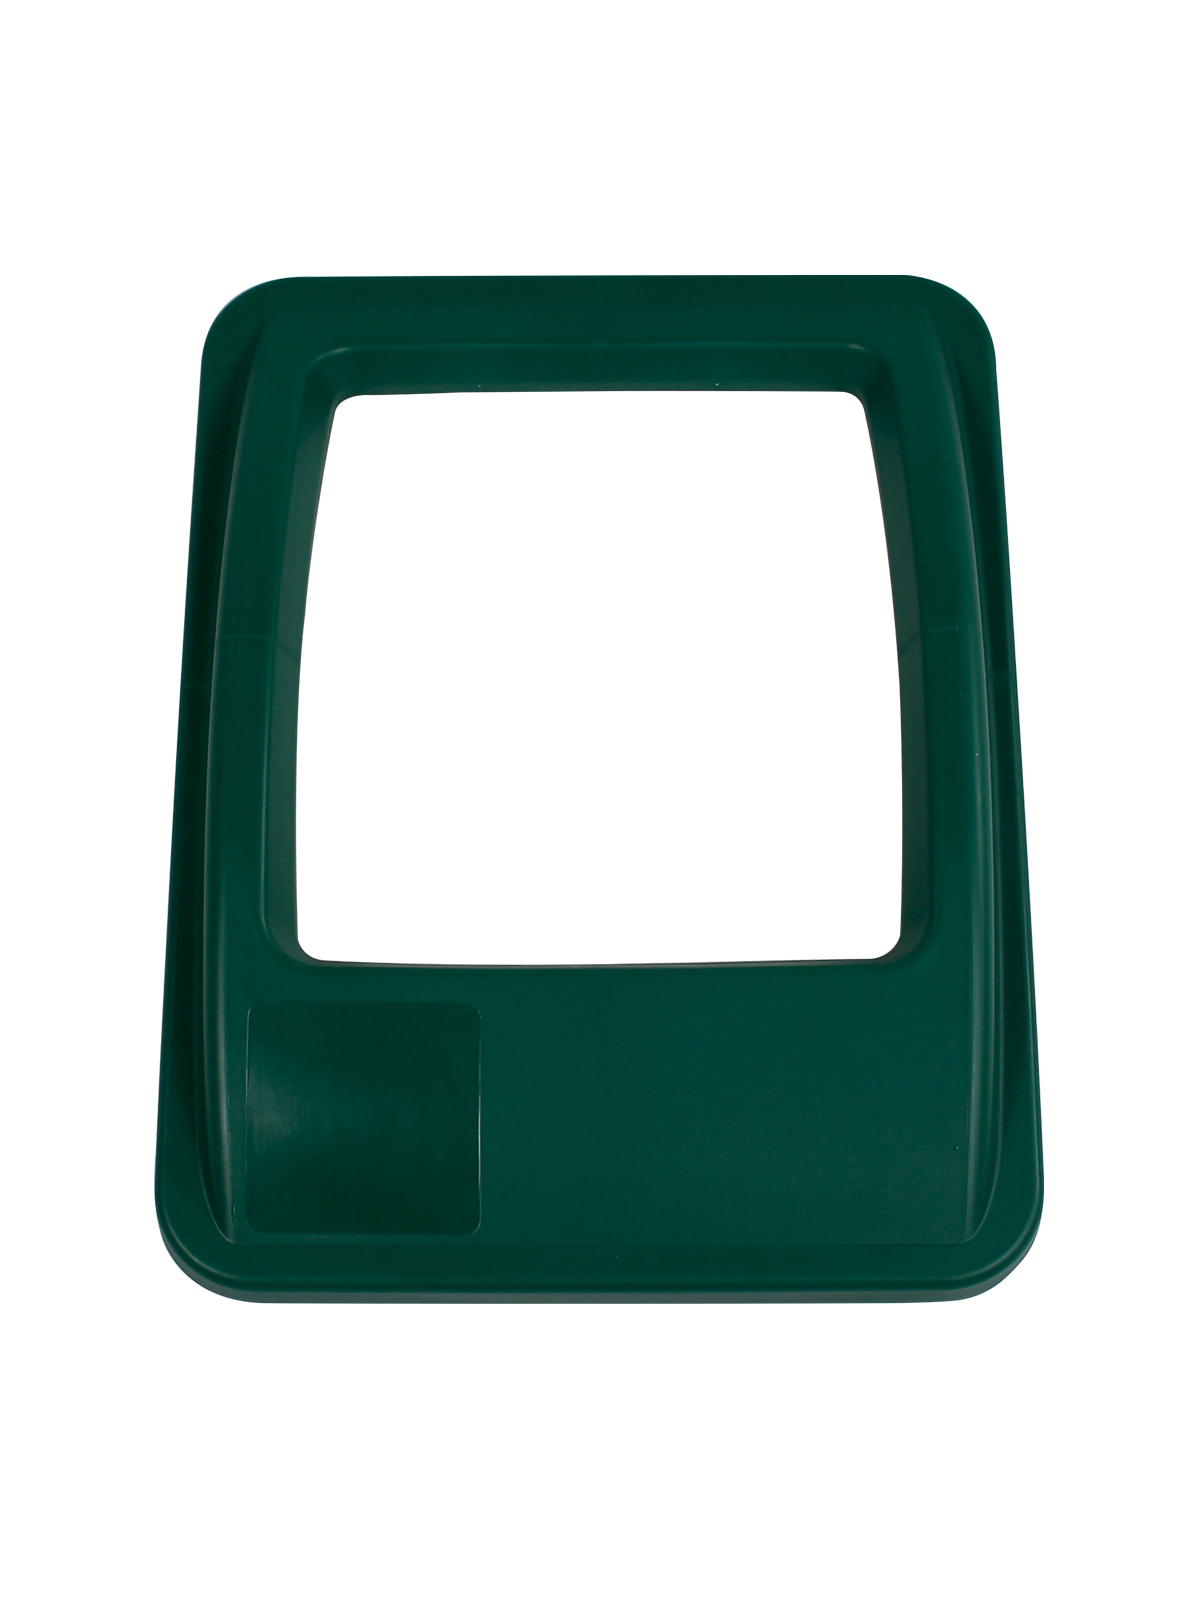 WASTE WATCHER® XL - LID - FULL OPENING - DARK GREEN title=